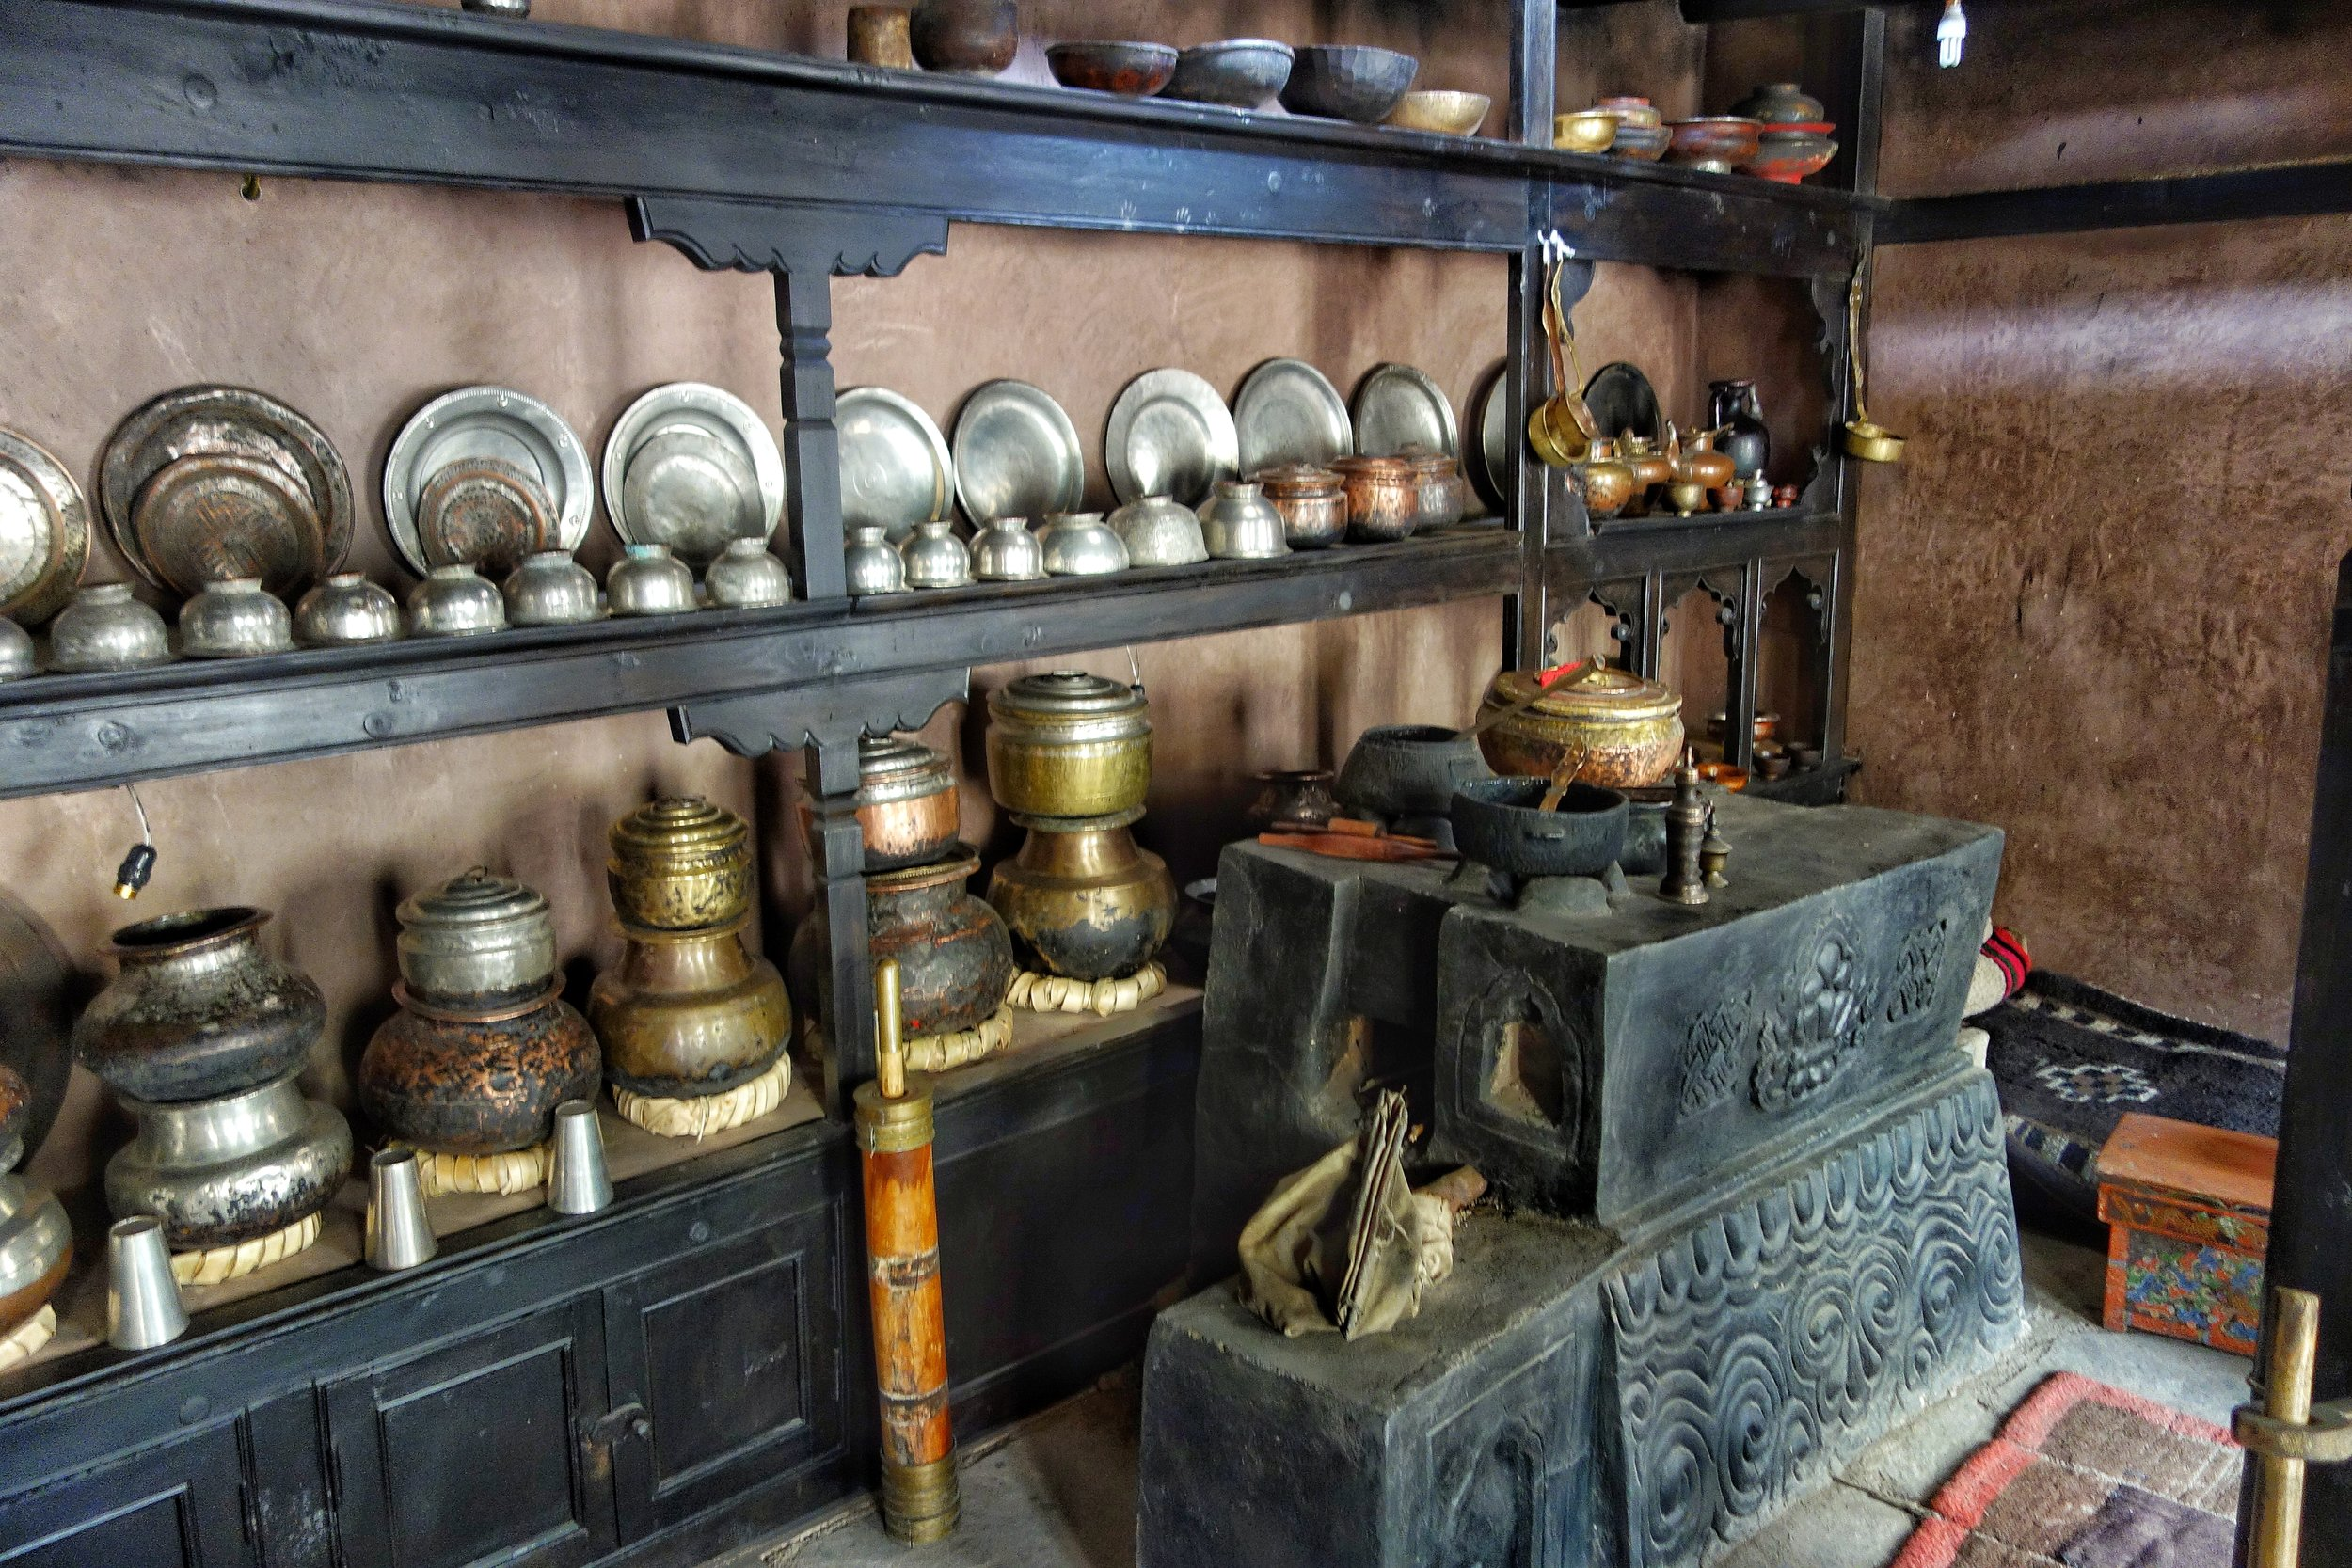 Traditional Ladakhi Stove and Utensils.